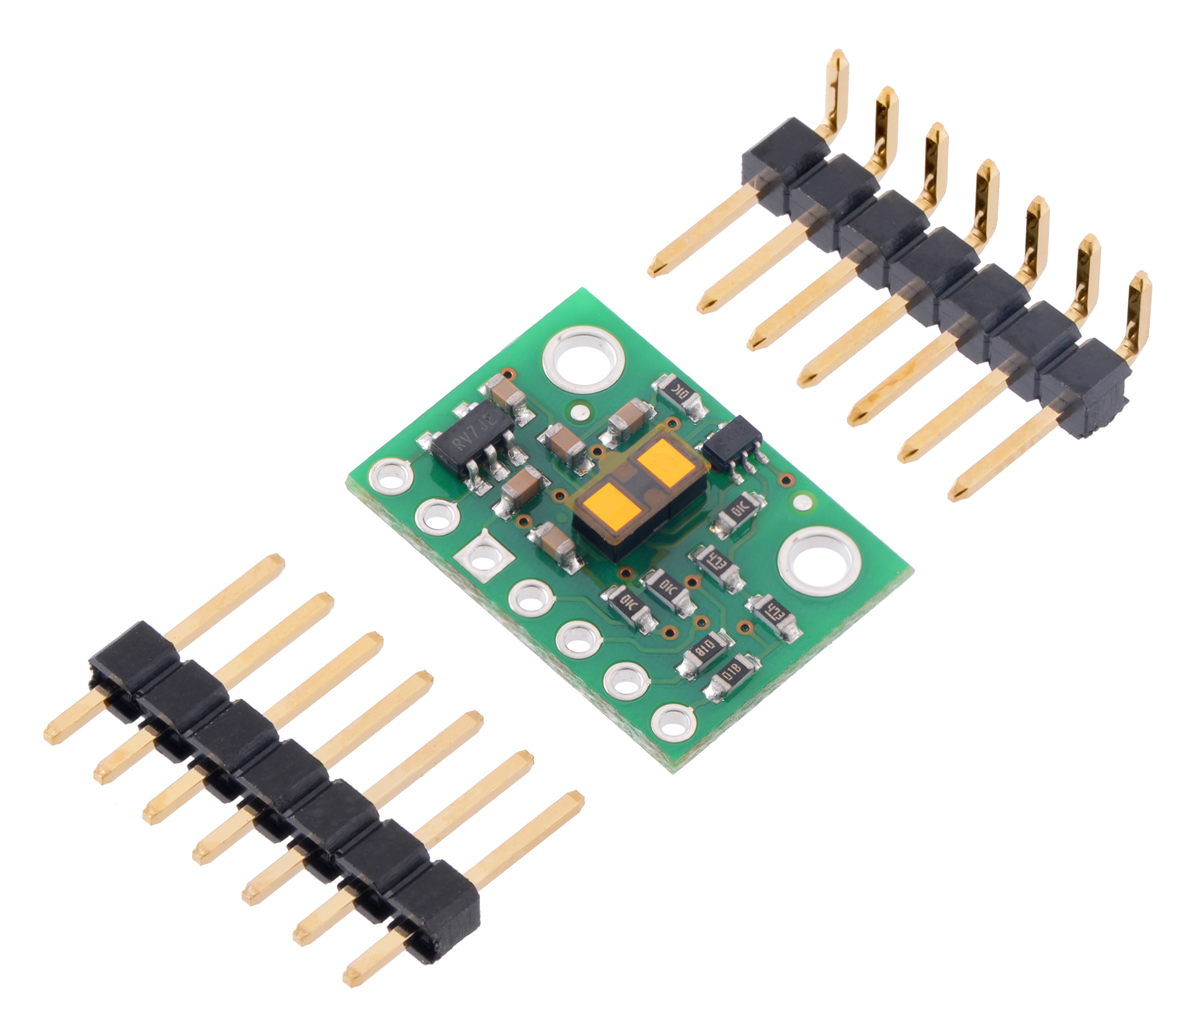 Pololu Vl53l1x Time Of Flight Distance Sensor Carrier With Voltage Circuit Board Electronic Components Inside A Computer Stock Photo Included Header Pins